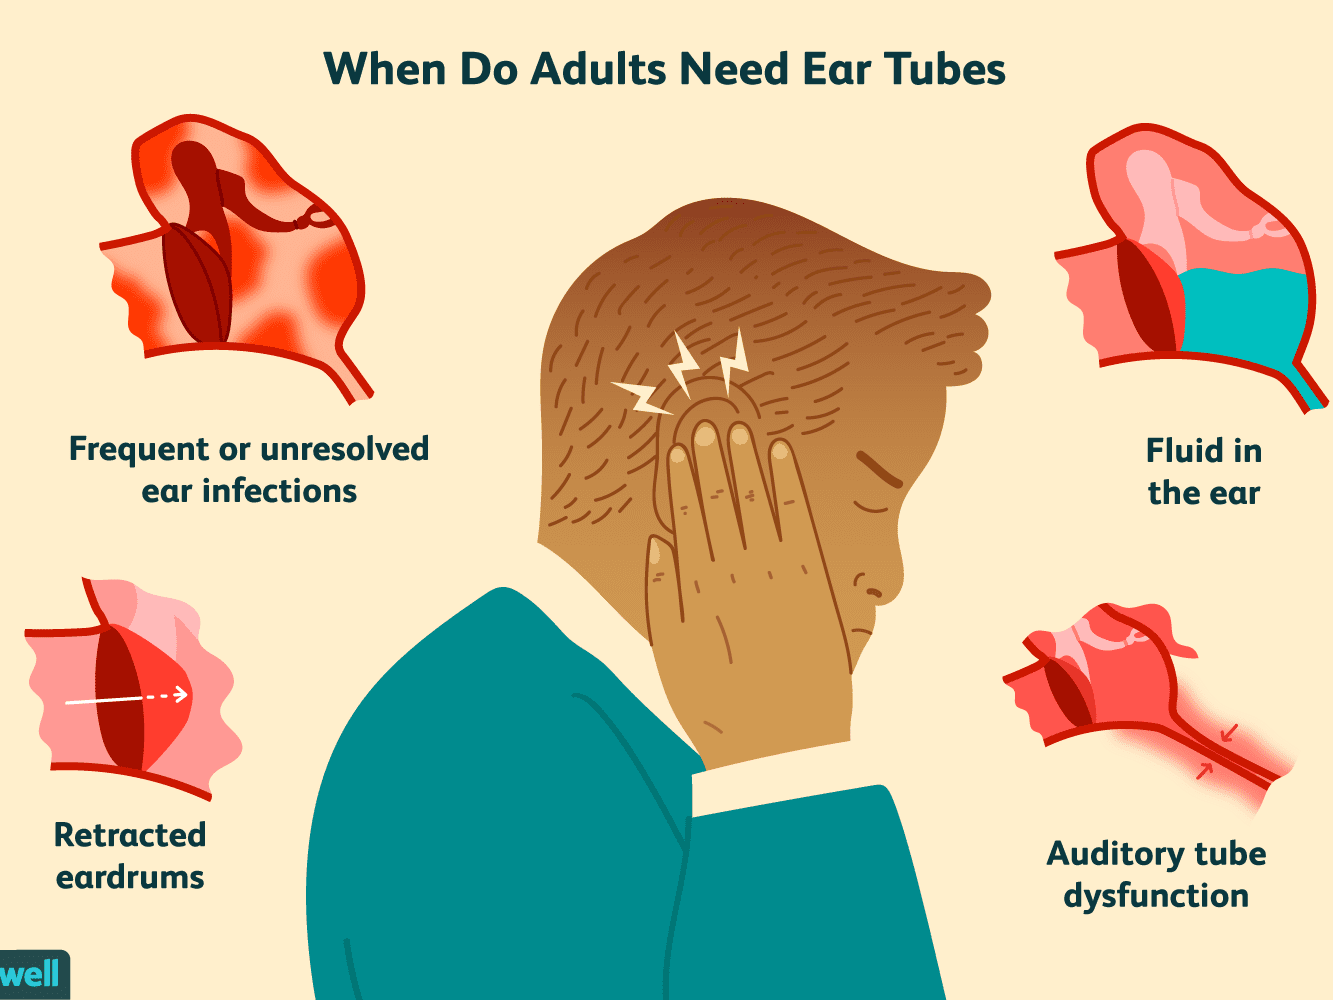 Ear infections in adult